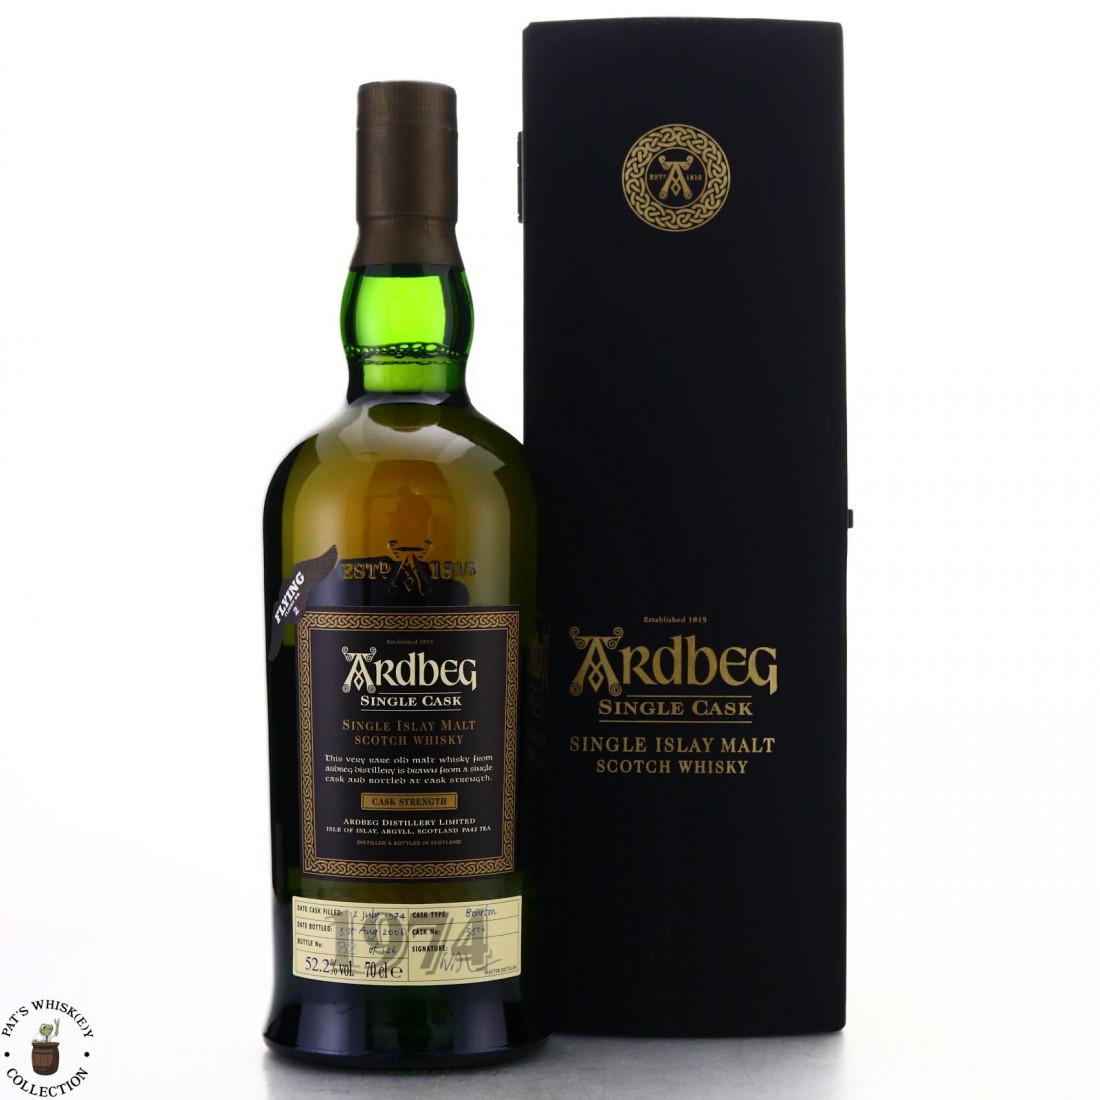 Ardbeg 1974 Single Bourbon Cask 32 Year Old #3306 / Juul's Flight No.2 'Flying Turf'